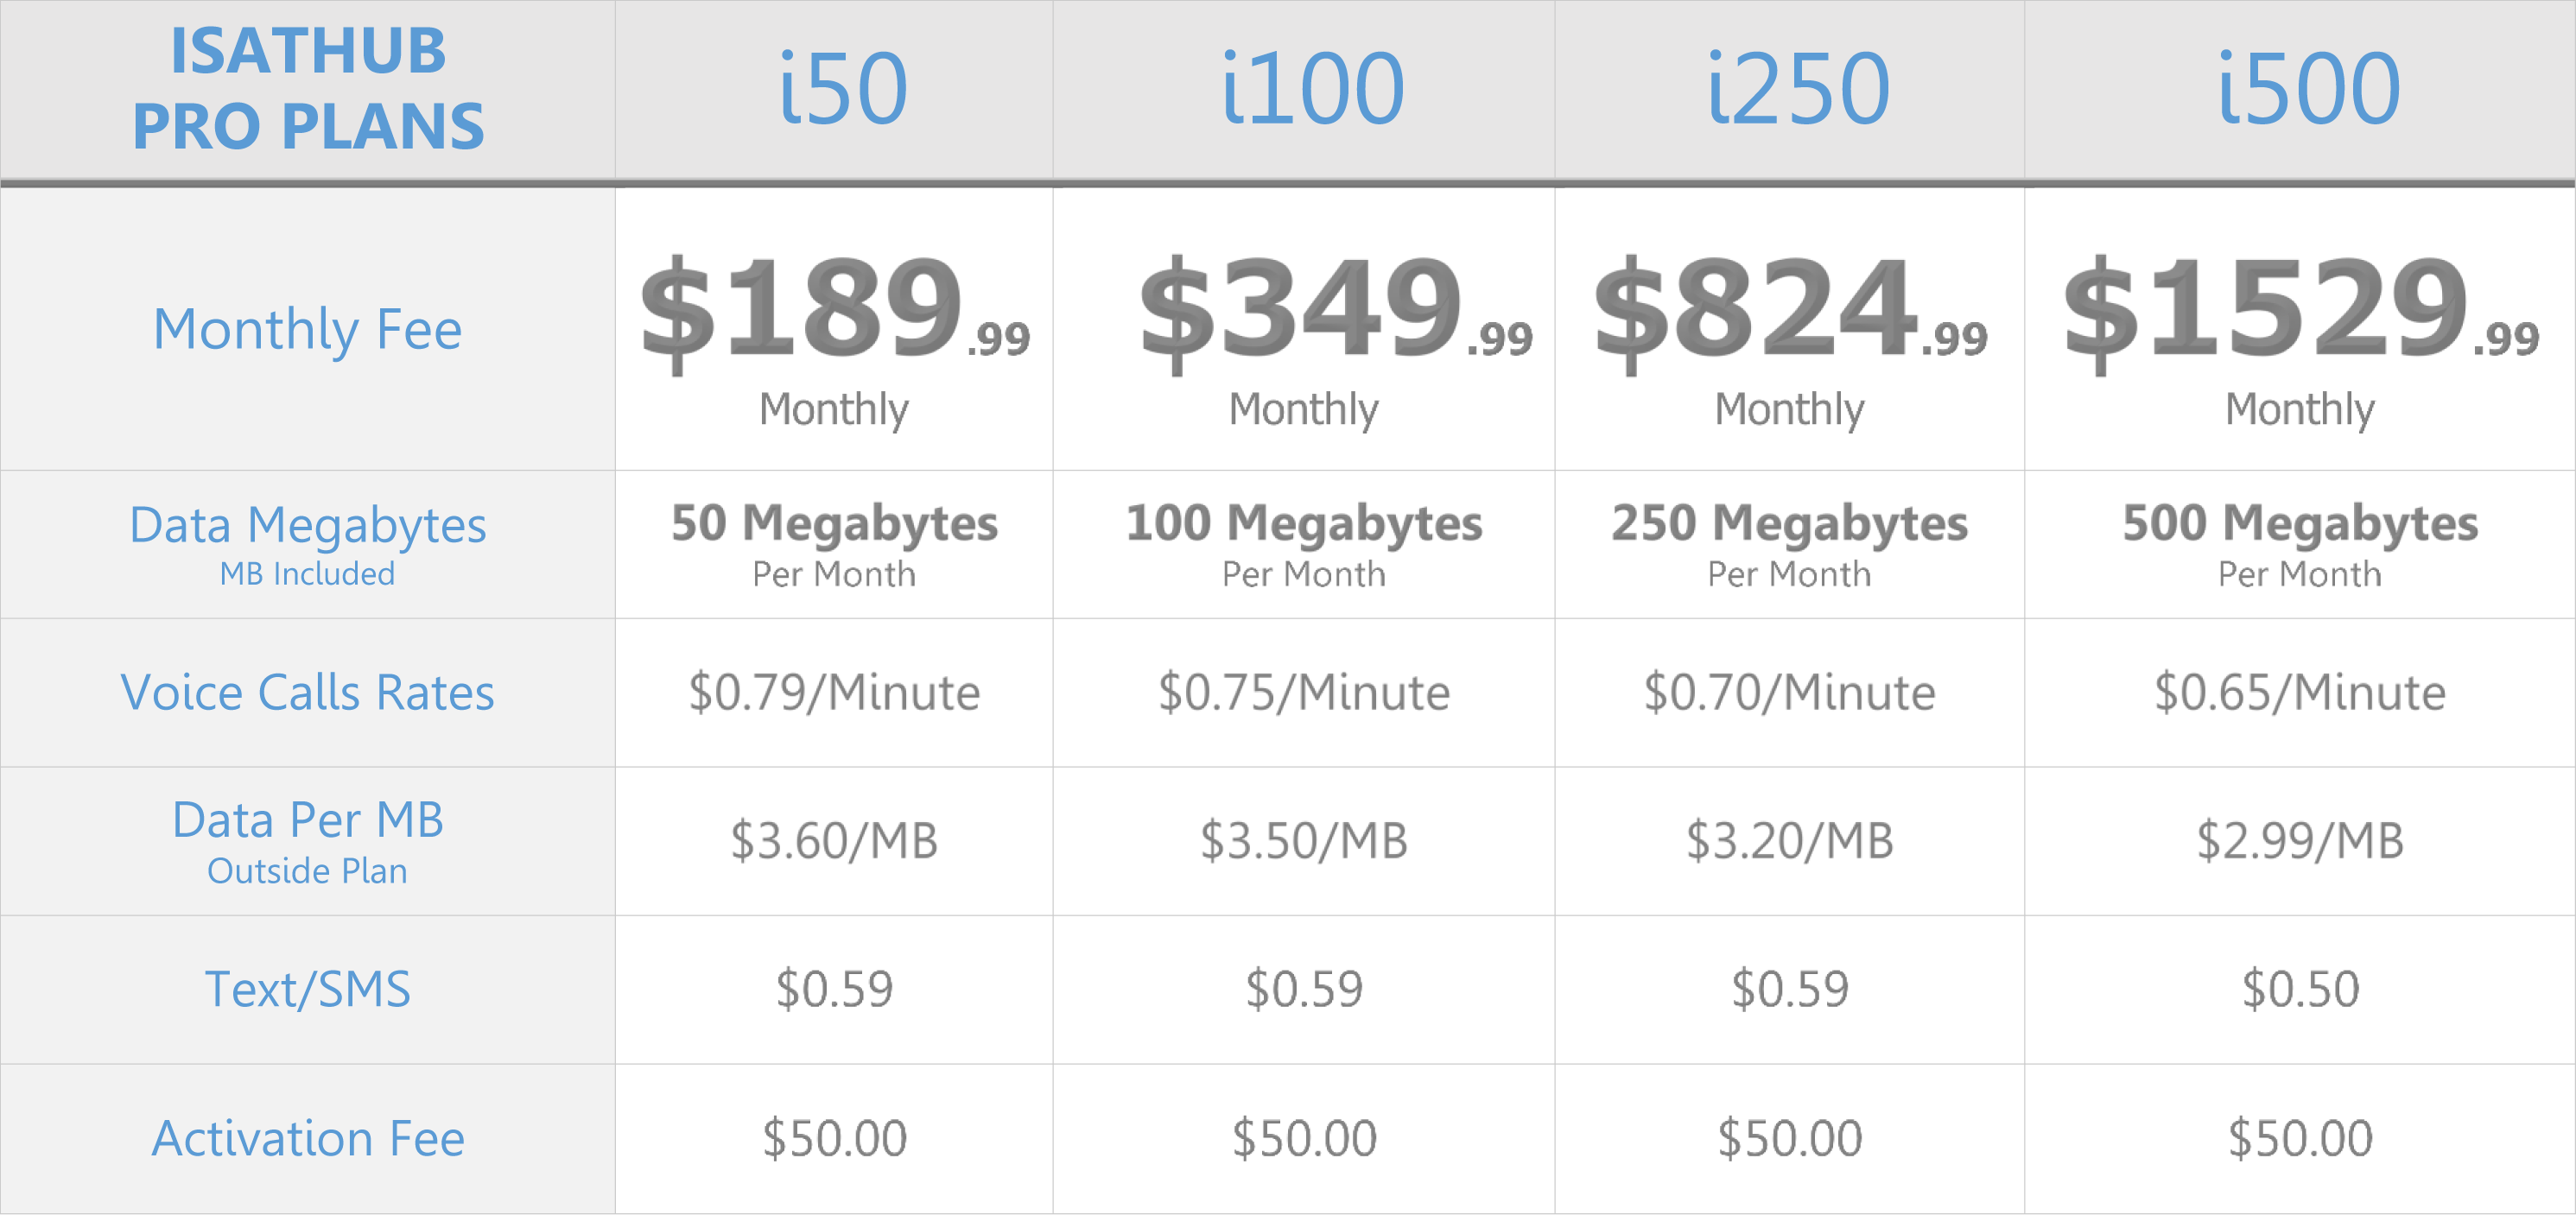 isathub-monthly-data-pro-airtime-service-plans-chart.png